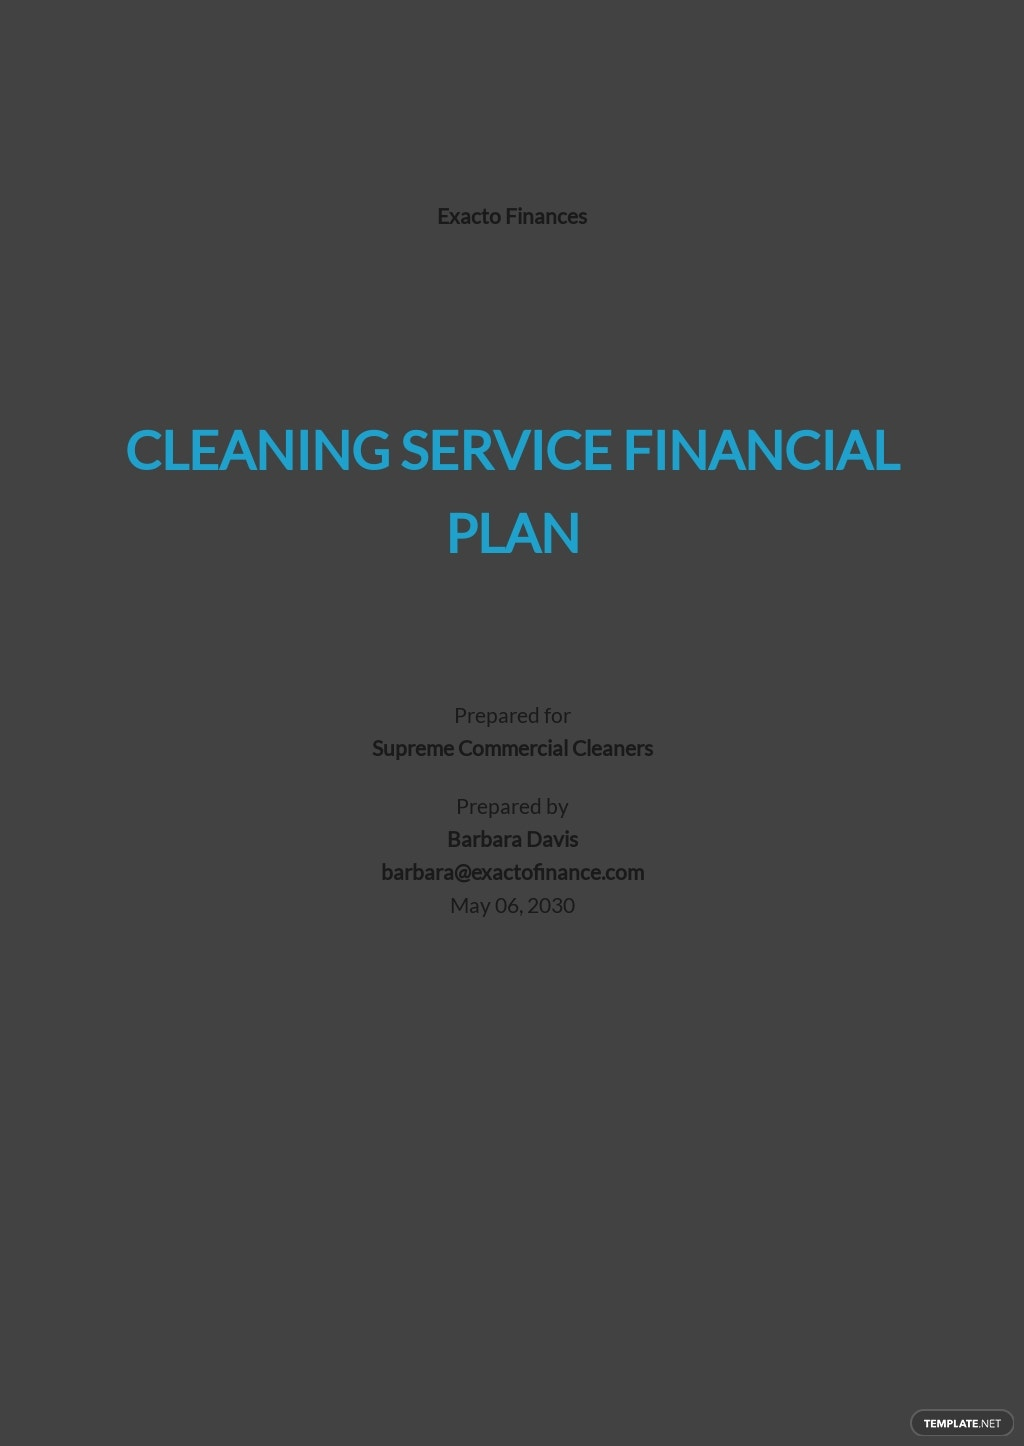 Cleaning Service Financial Plan Template